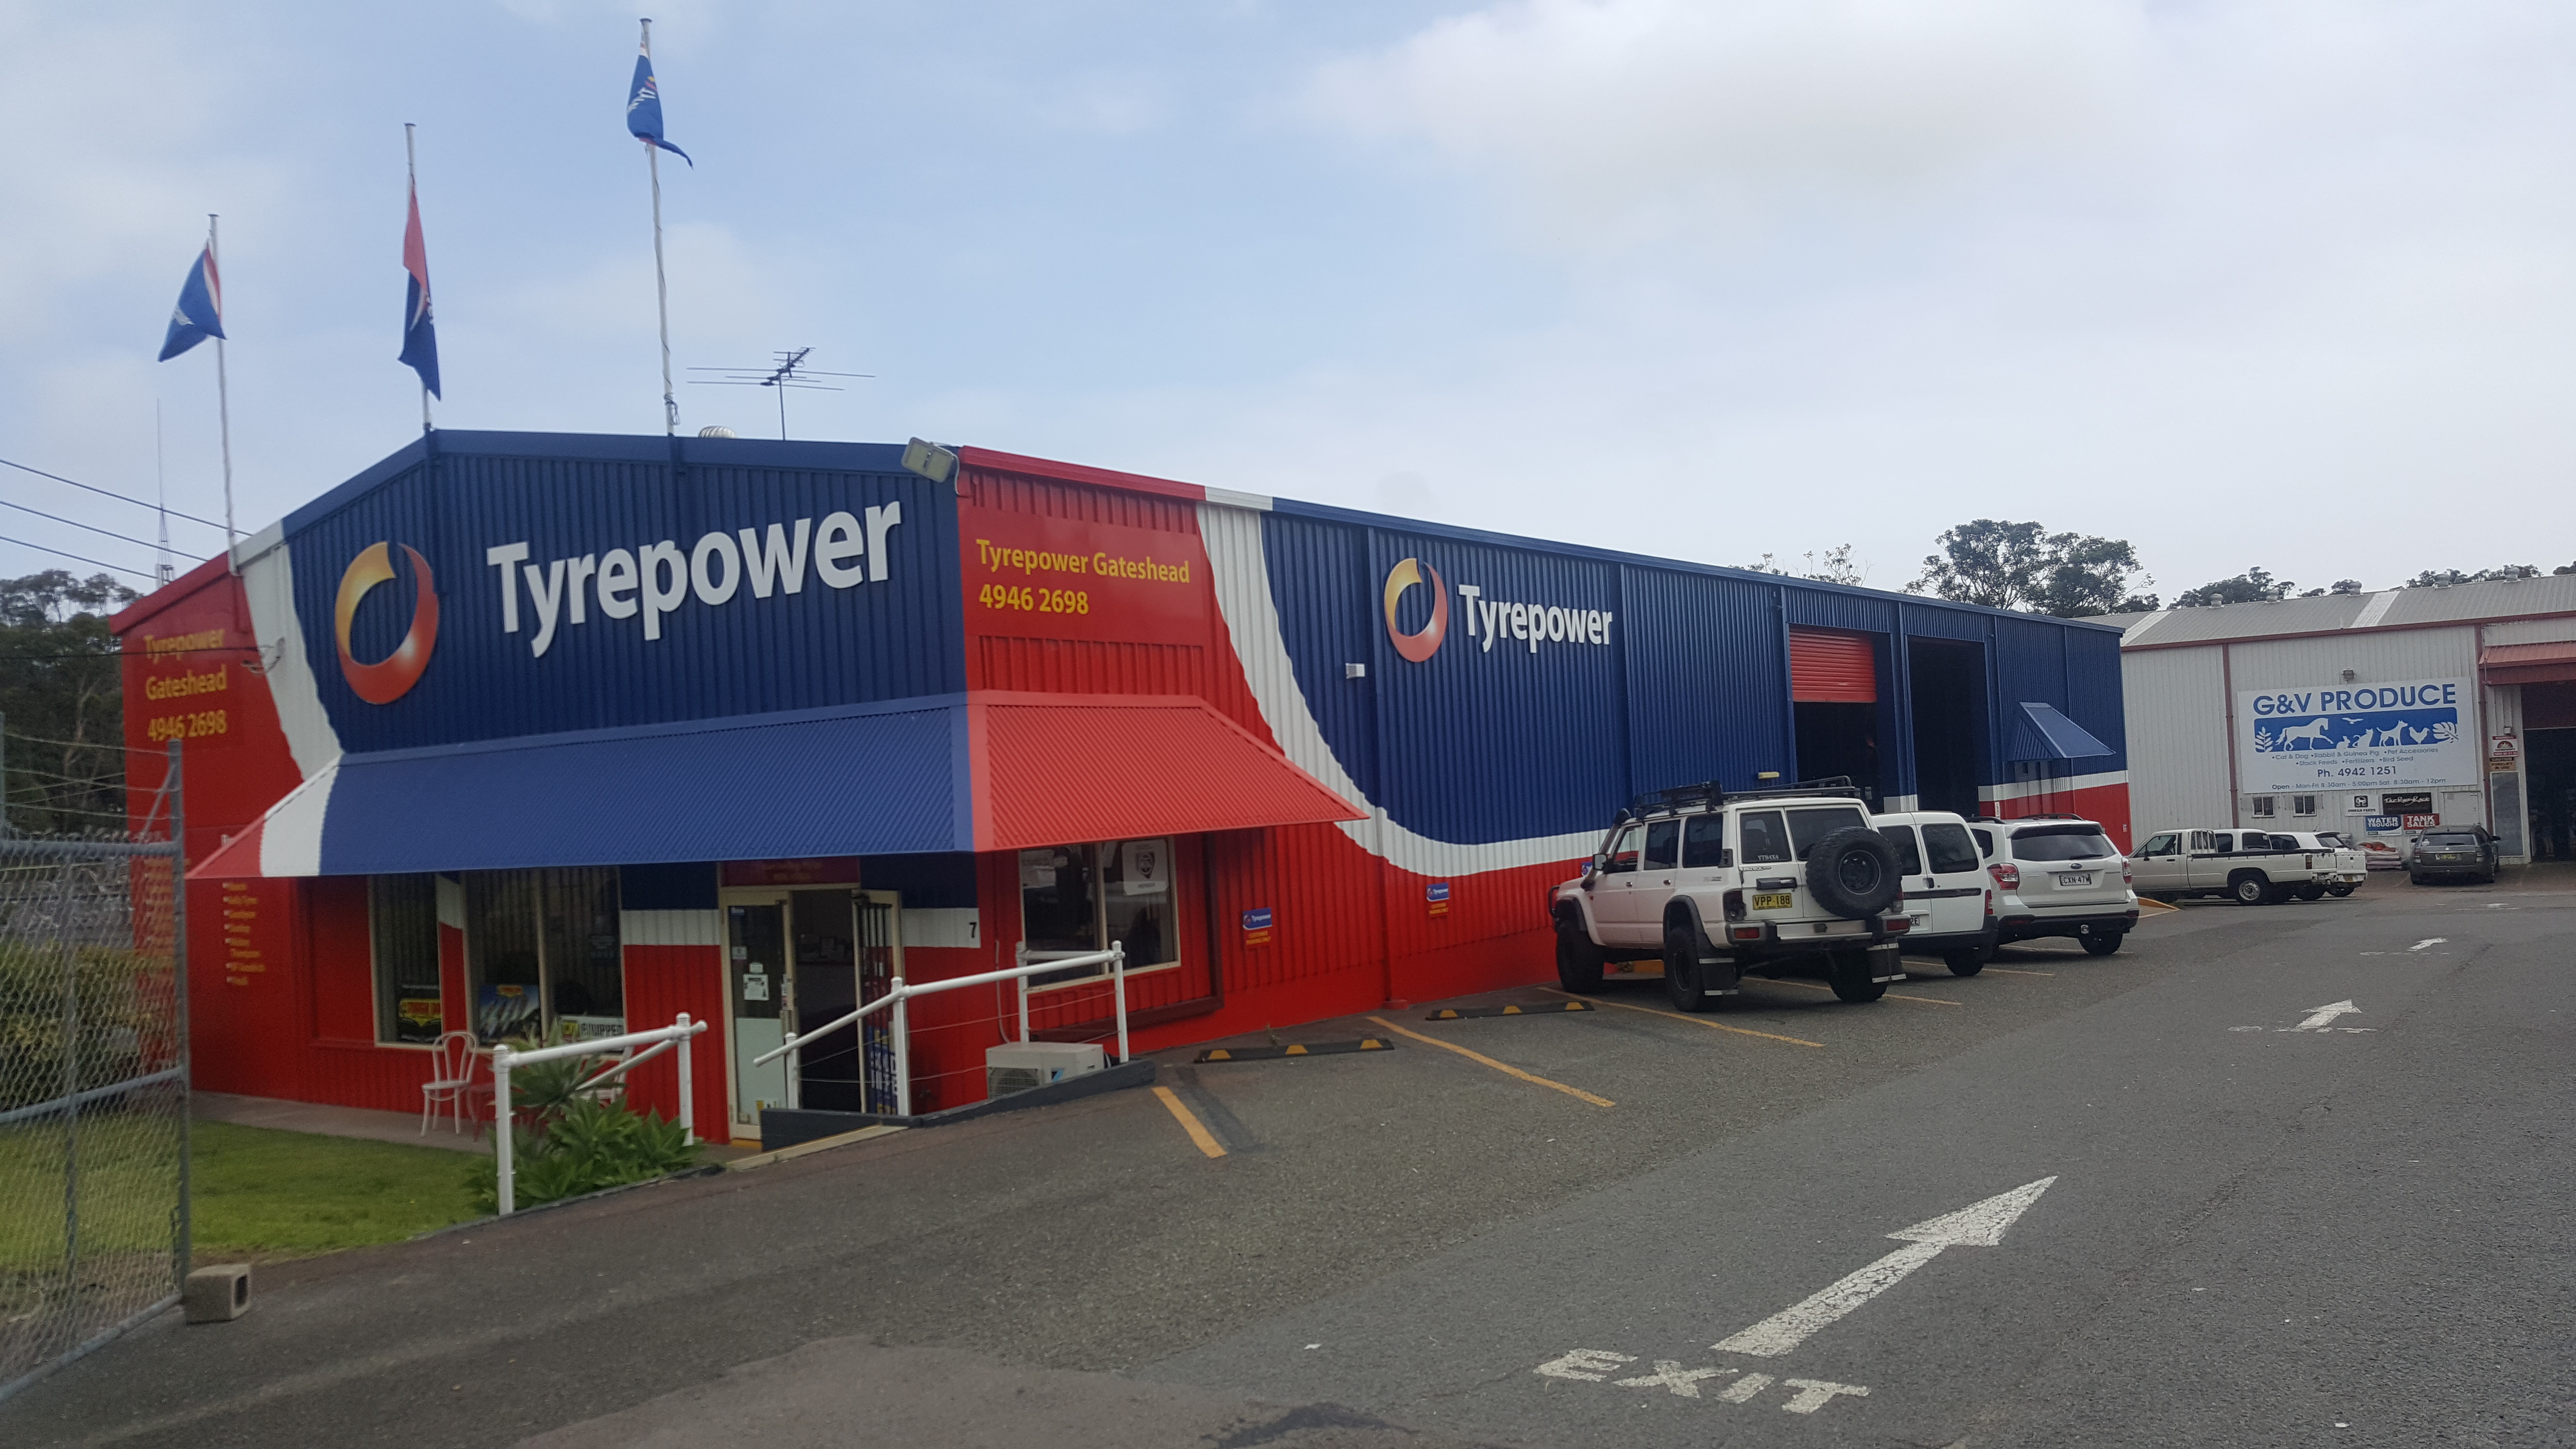 Tyrepower Gateshead Tyre and Mechanical Shop, Priced to Sell!